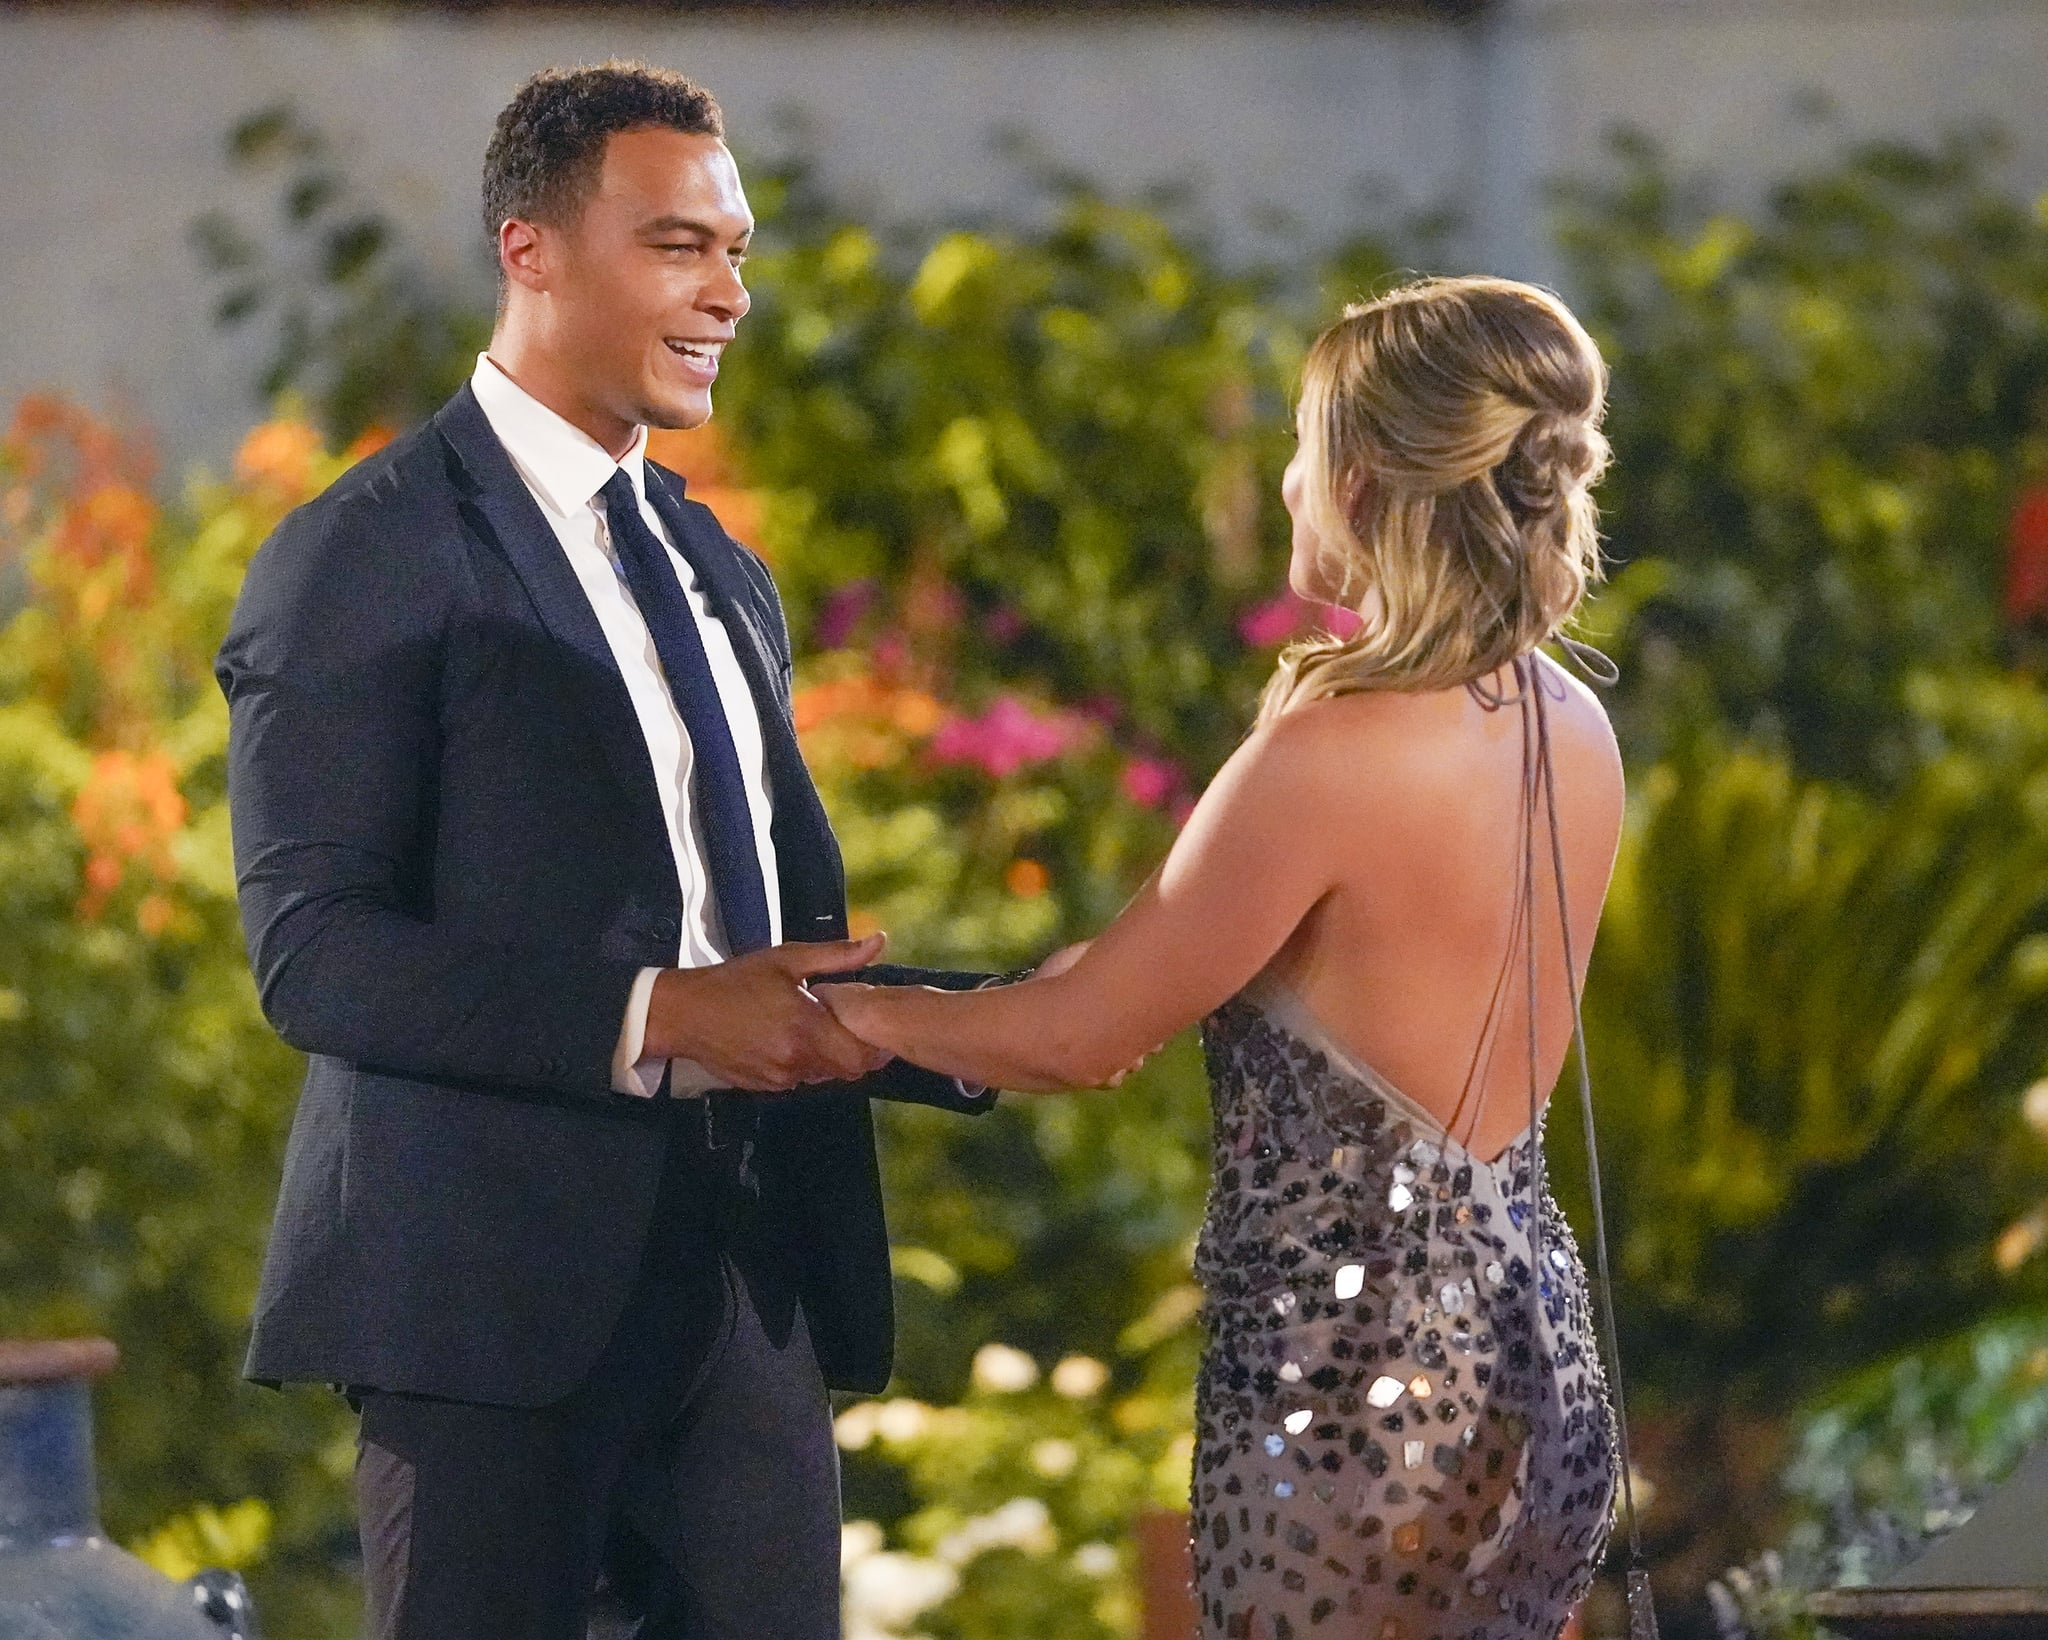 """The Bachelorette: Clare Gives Dale Moss the First Impression Rose After He Leaves Her """"Shaking"""""""